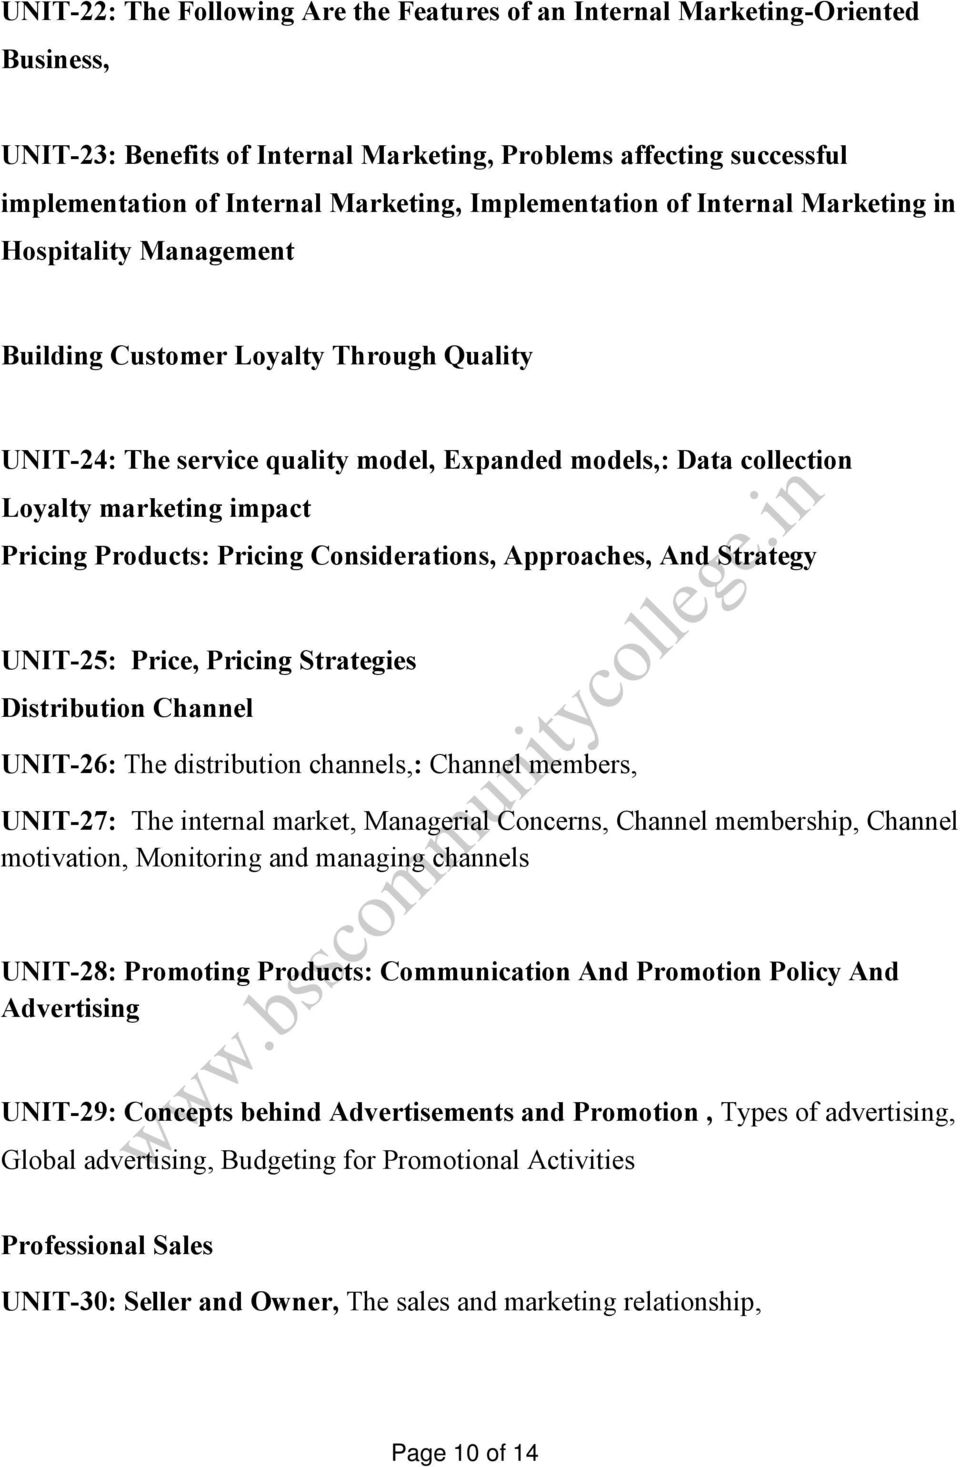 Pricing Products: Pricing Considerations, Approaches, And Strategy UNIT-25: Price, Pricing Strategies Distribution Channel UNIT-26: The distribution channels,: Channel members, UNIT-27: The internal